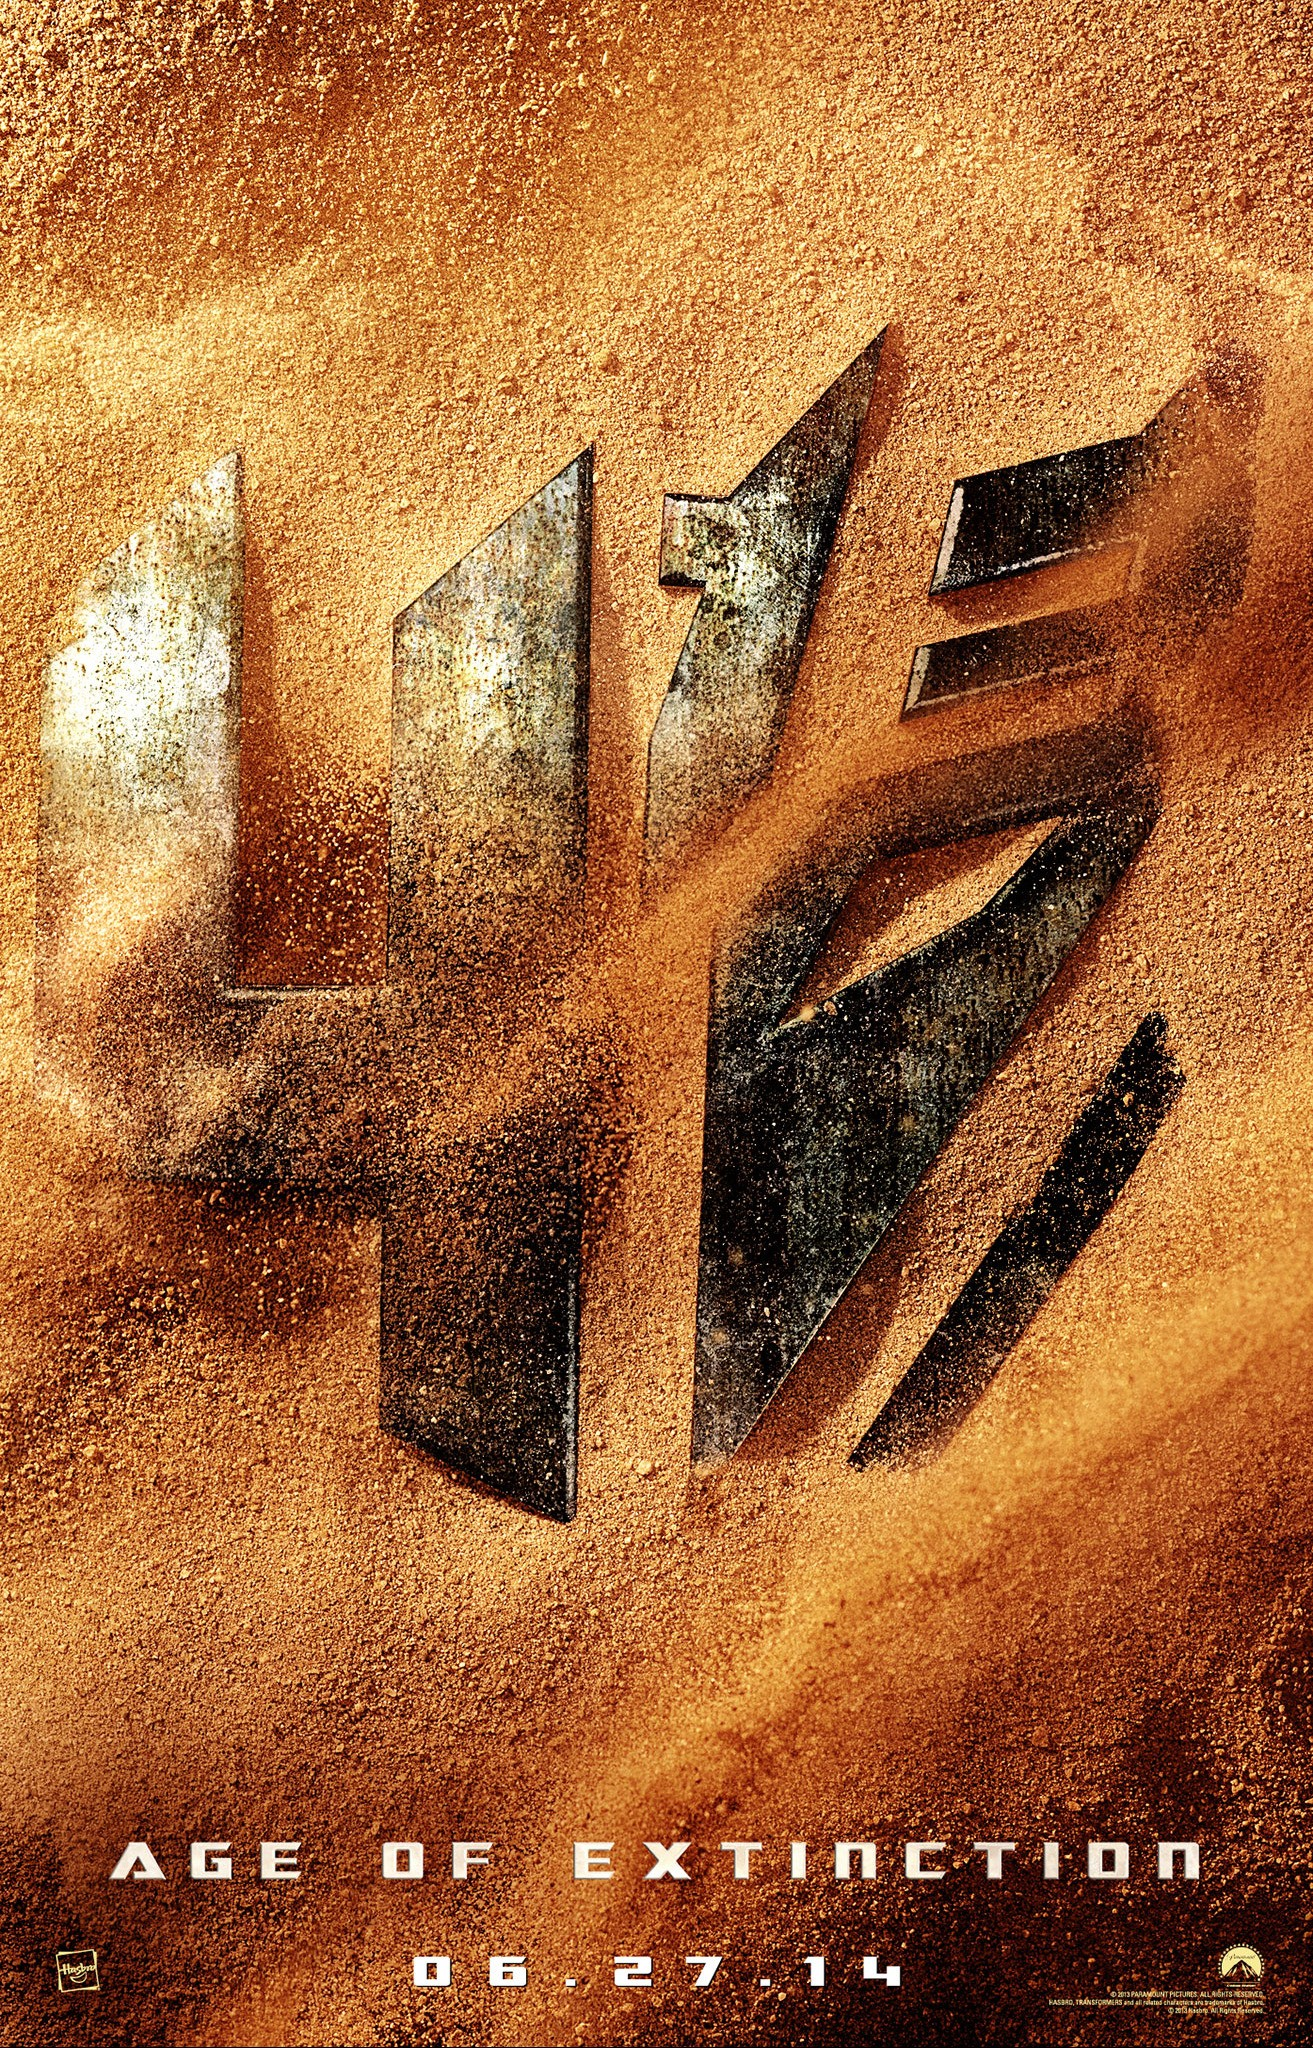 Transformers Age of Extinction-Official Teaser PROMO POSTER-04SETEMBRO2013